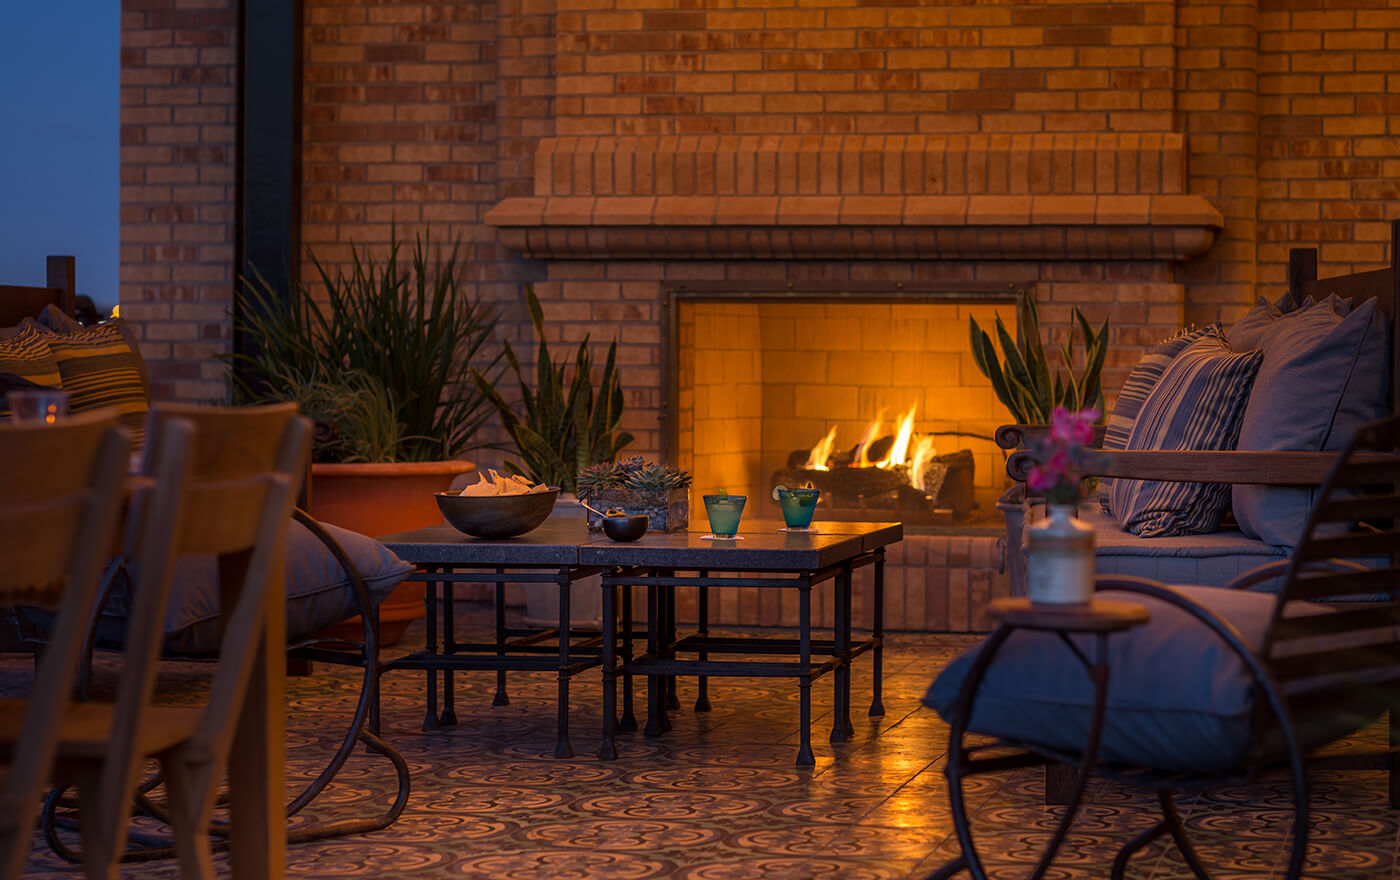 A picture of the terrace of  Hotel Emma's Emma Koehler suite option. Pictured is a close view of the fireplace next to the seating arrangement.